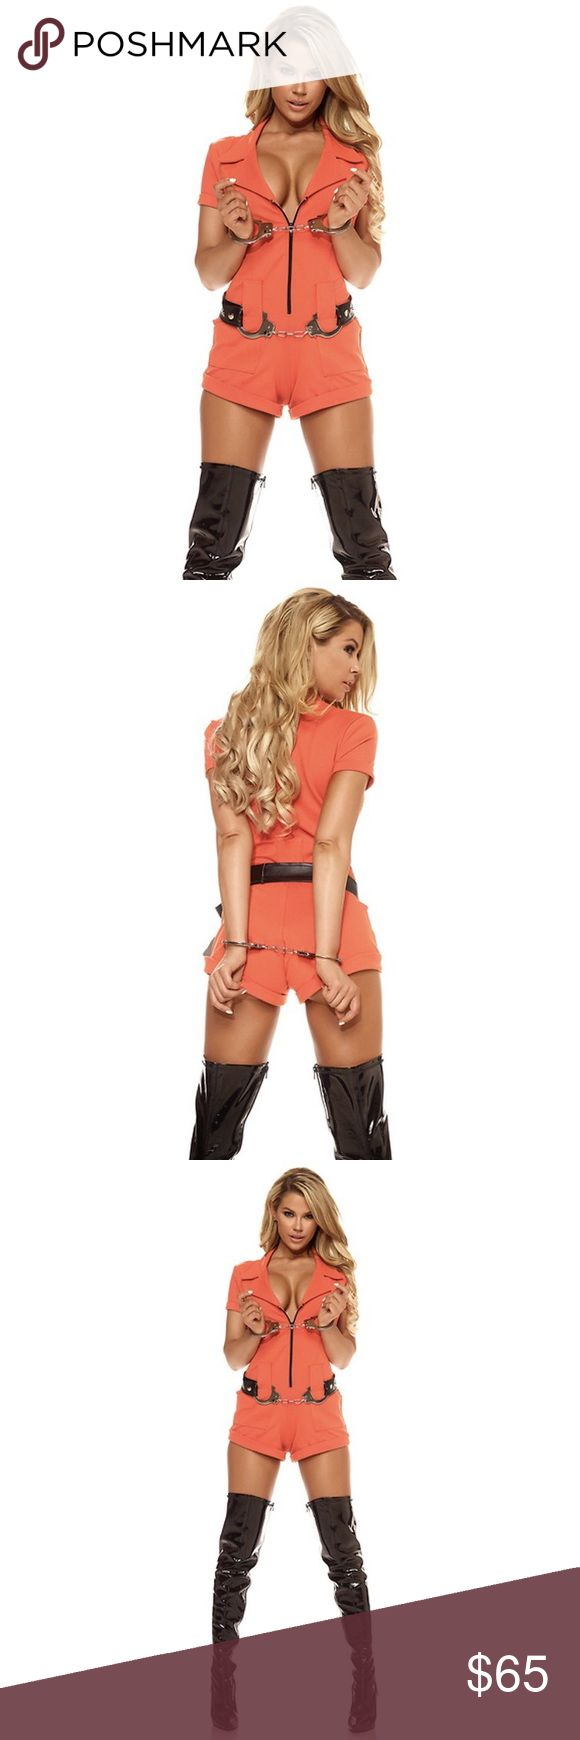 PreorderWoman Inmate Costume #686 Preorder items will ship out in 1-2 days. No one will mind spending 25 to life with you when you're suited up in our 2-piece Booked Sexy Women's Inmate Costume. With cheeky romper and flirty handcuffs, you'll have no problems finding a partner in crime this Halloween. 2-Piece sexy inmate costume includes orange romper and handcuffs. Handcuff belt not included. Nylon/Spandex Blend. Price is Firm! Forplay Other